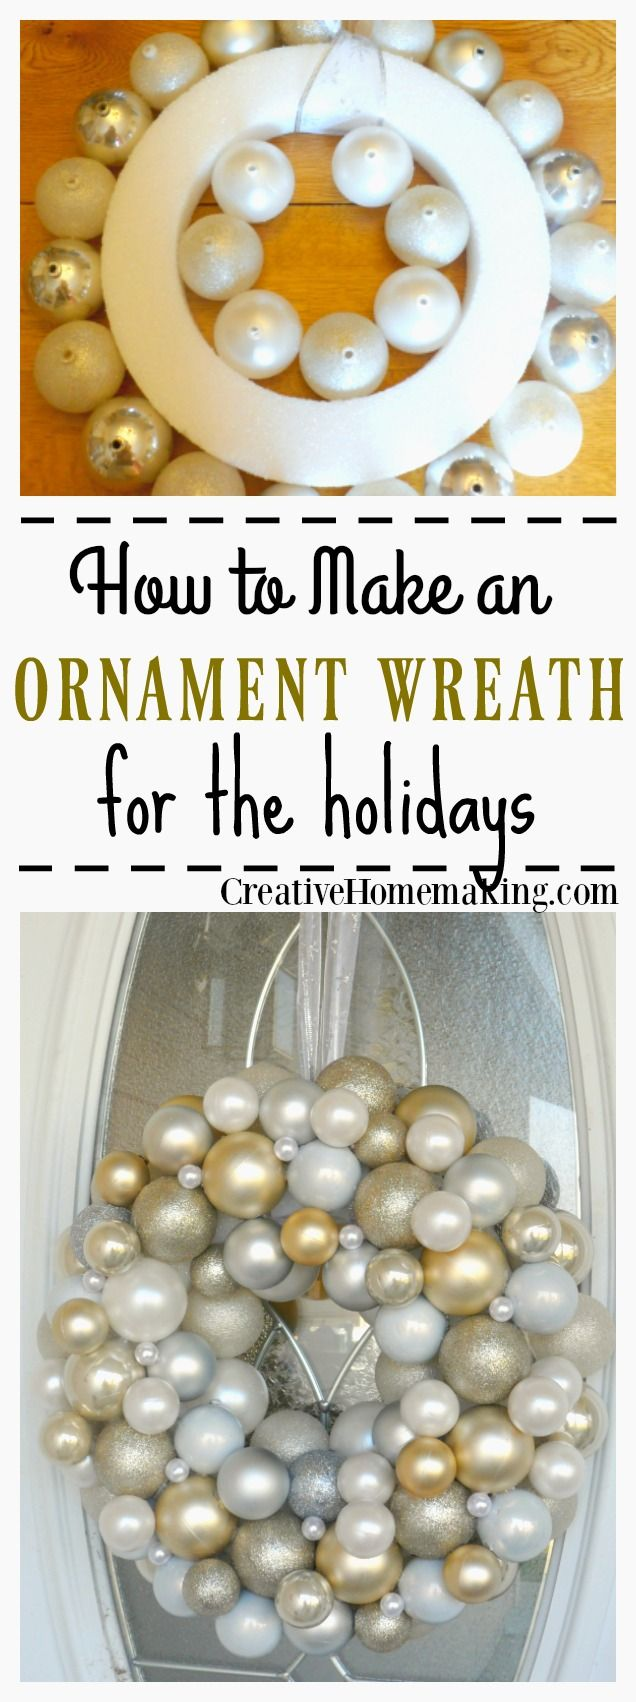 This elegant ornament wreath is very easy to make and can be made from ornaments purchased from the Dollar Store.